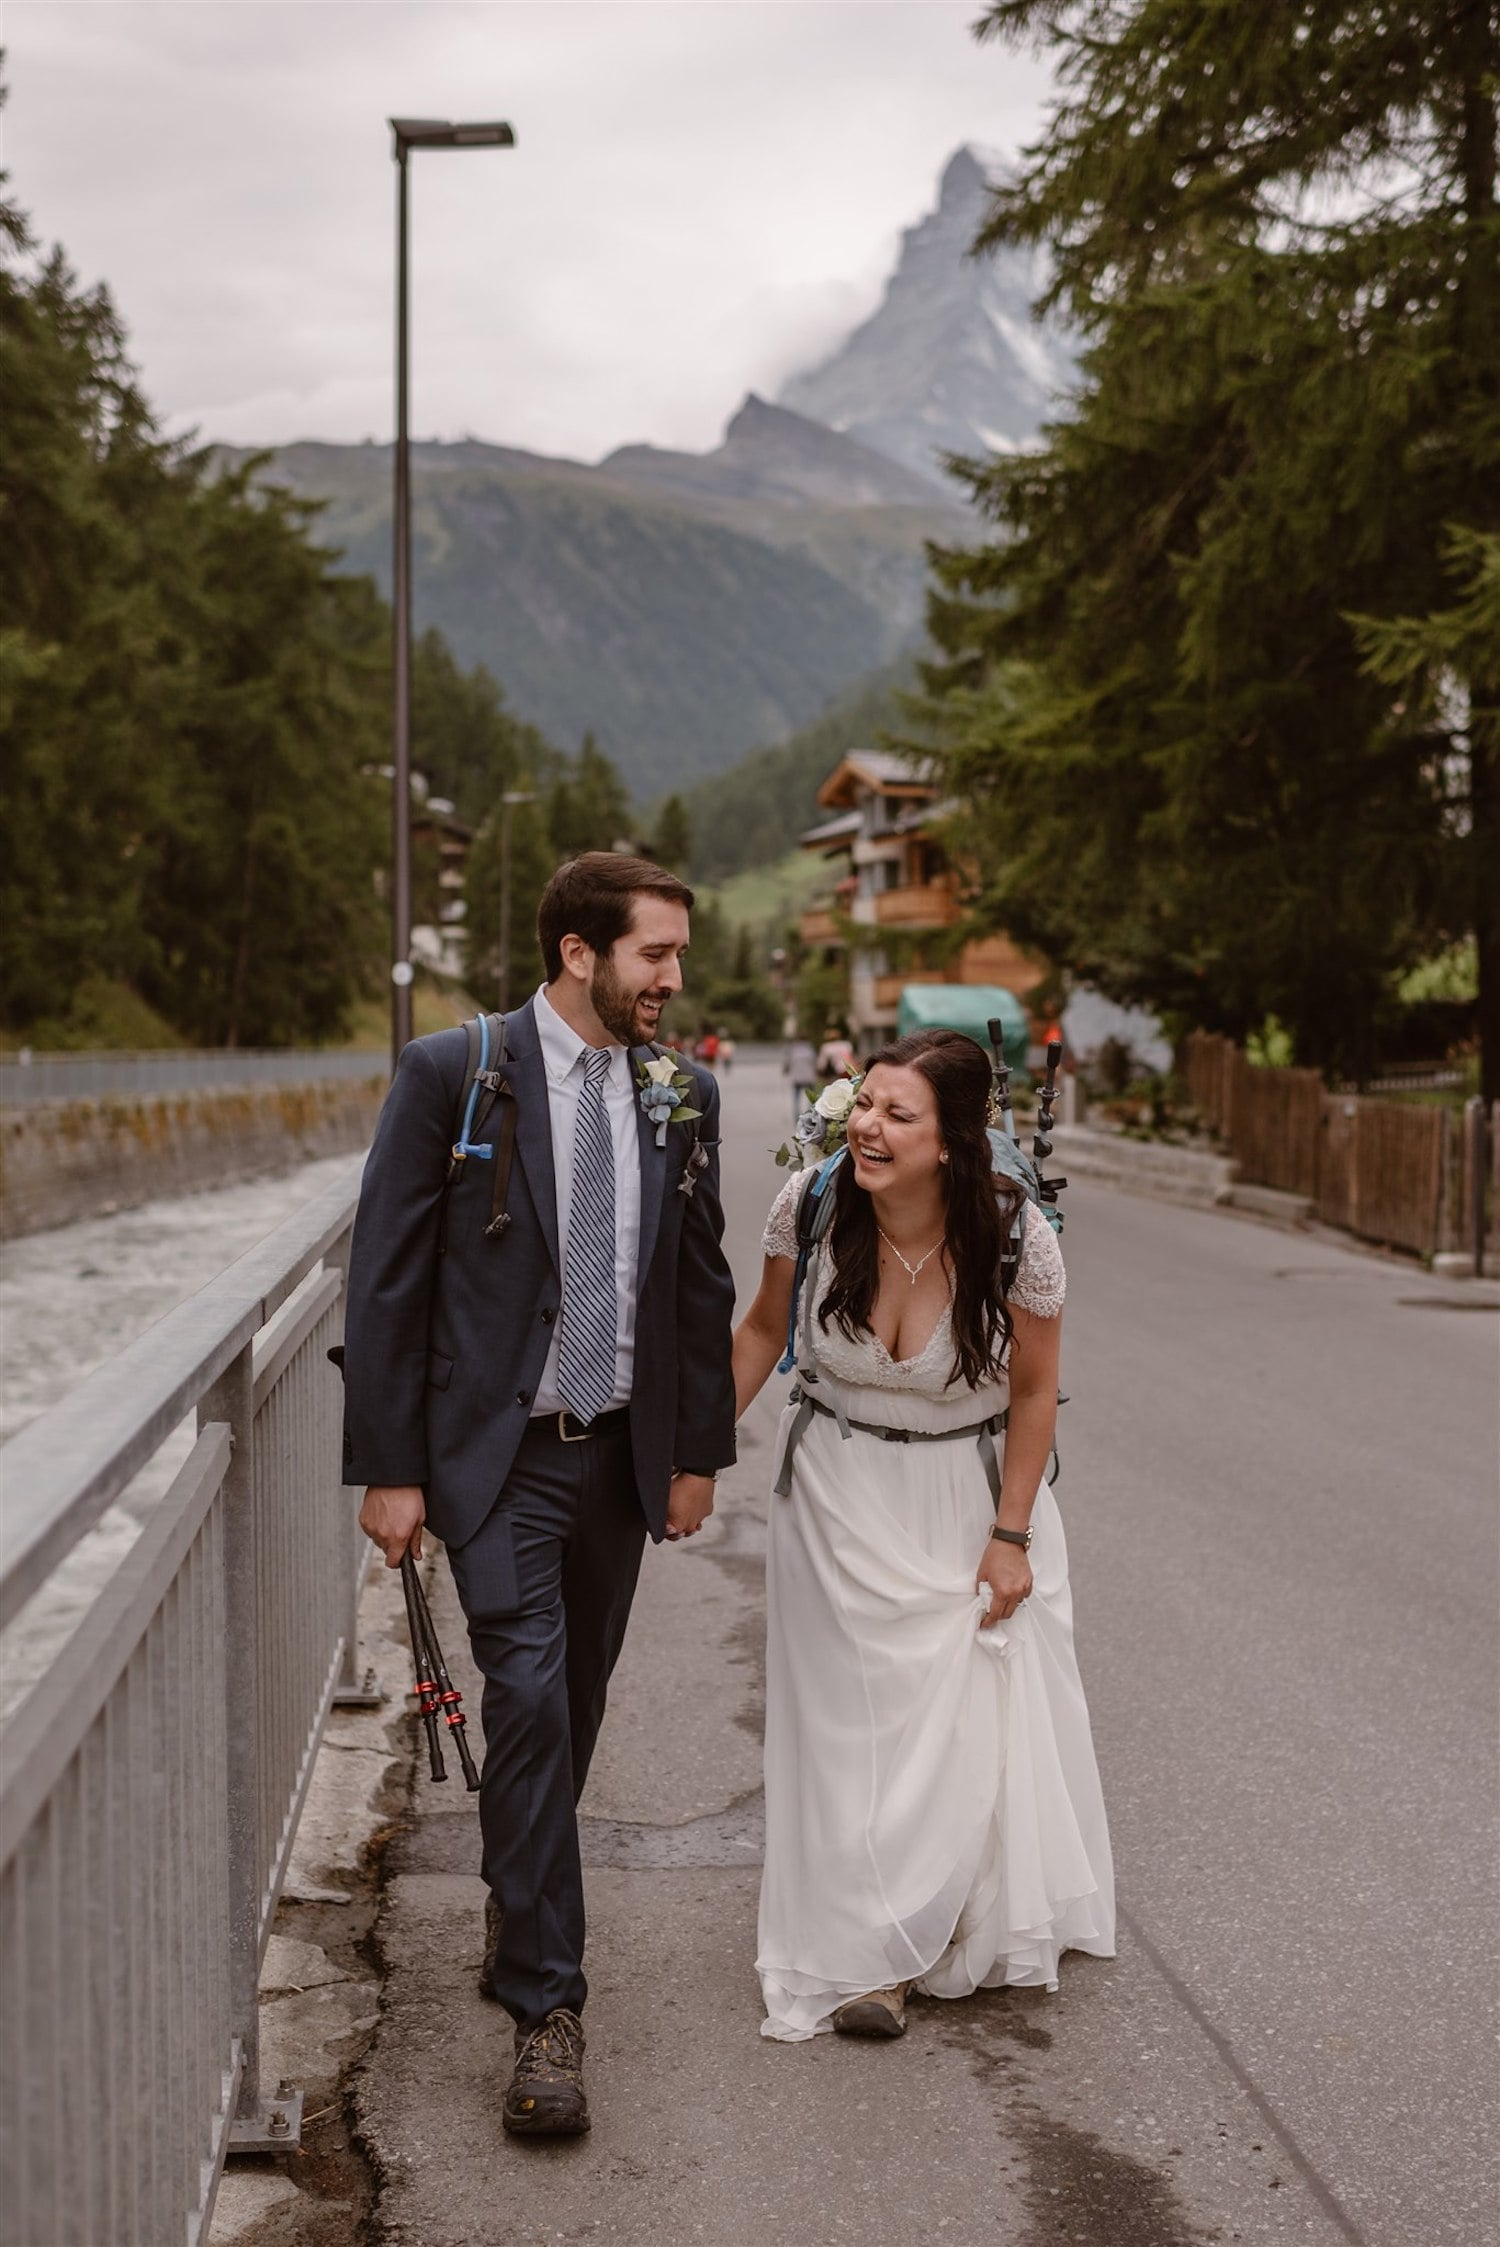 Lovers getting married in Zermatt, Switzerland